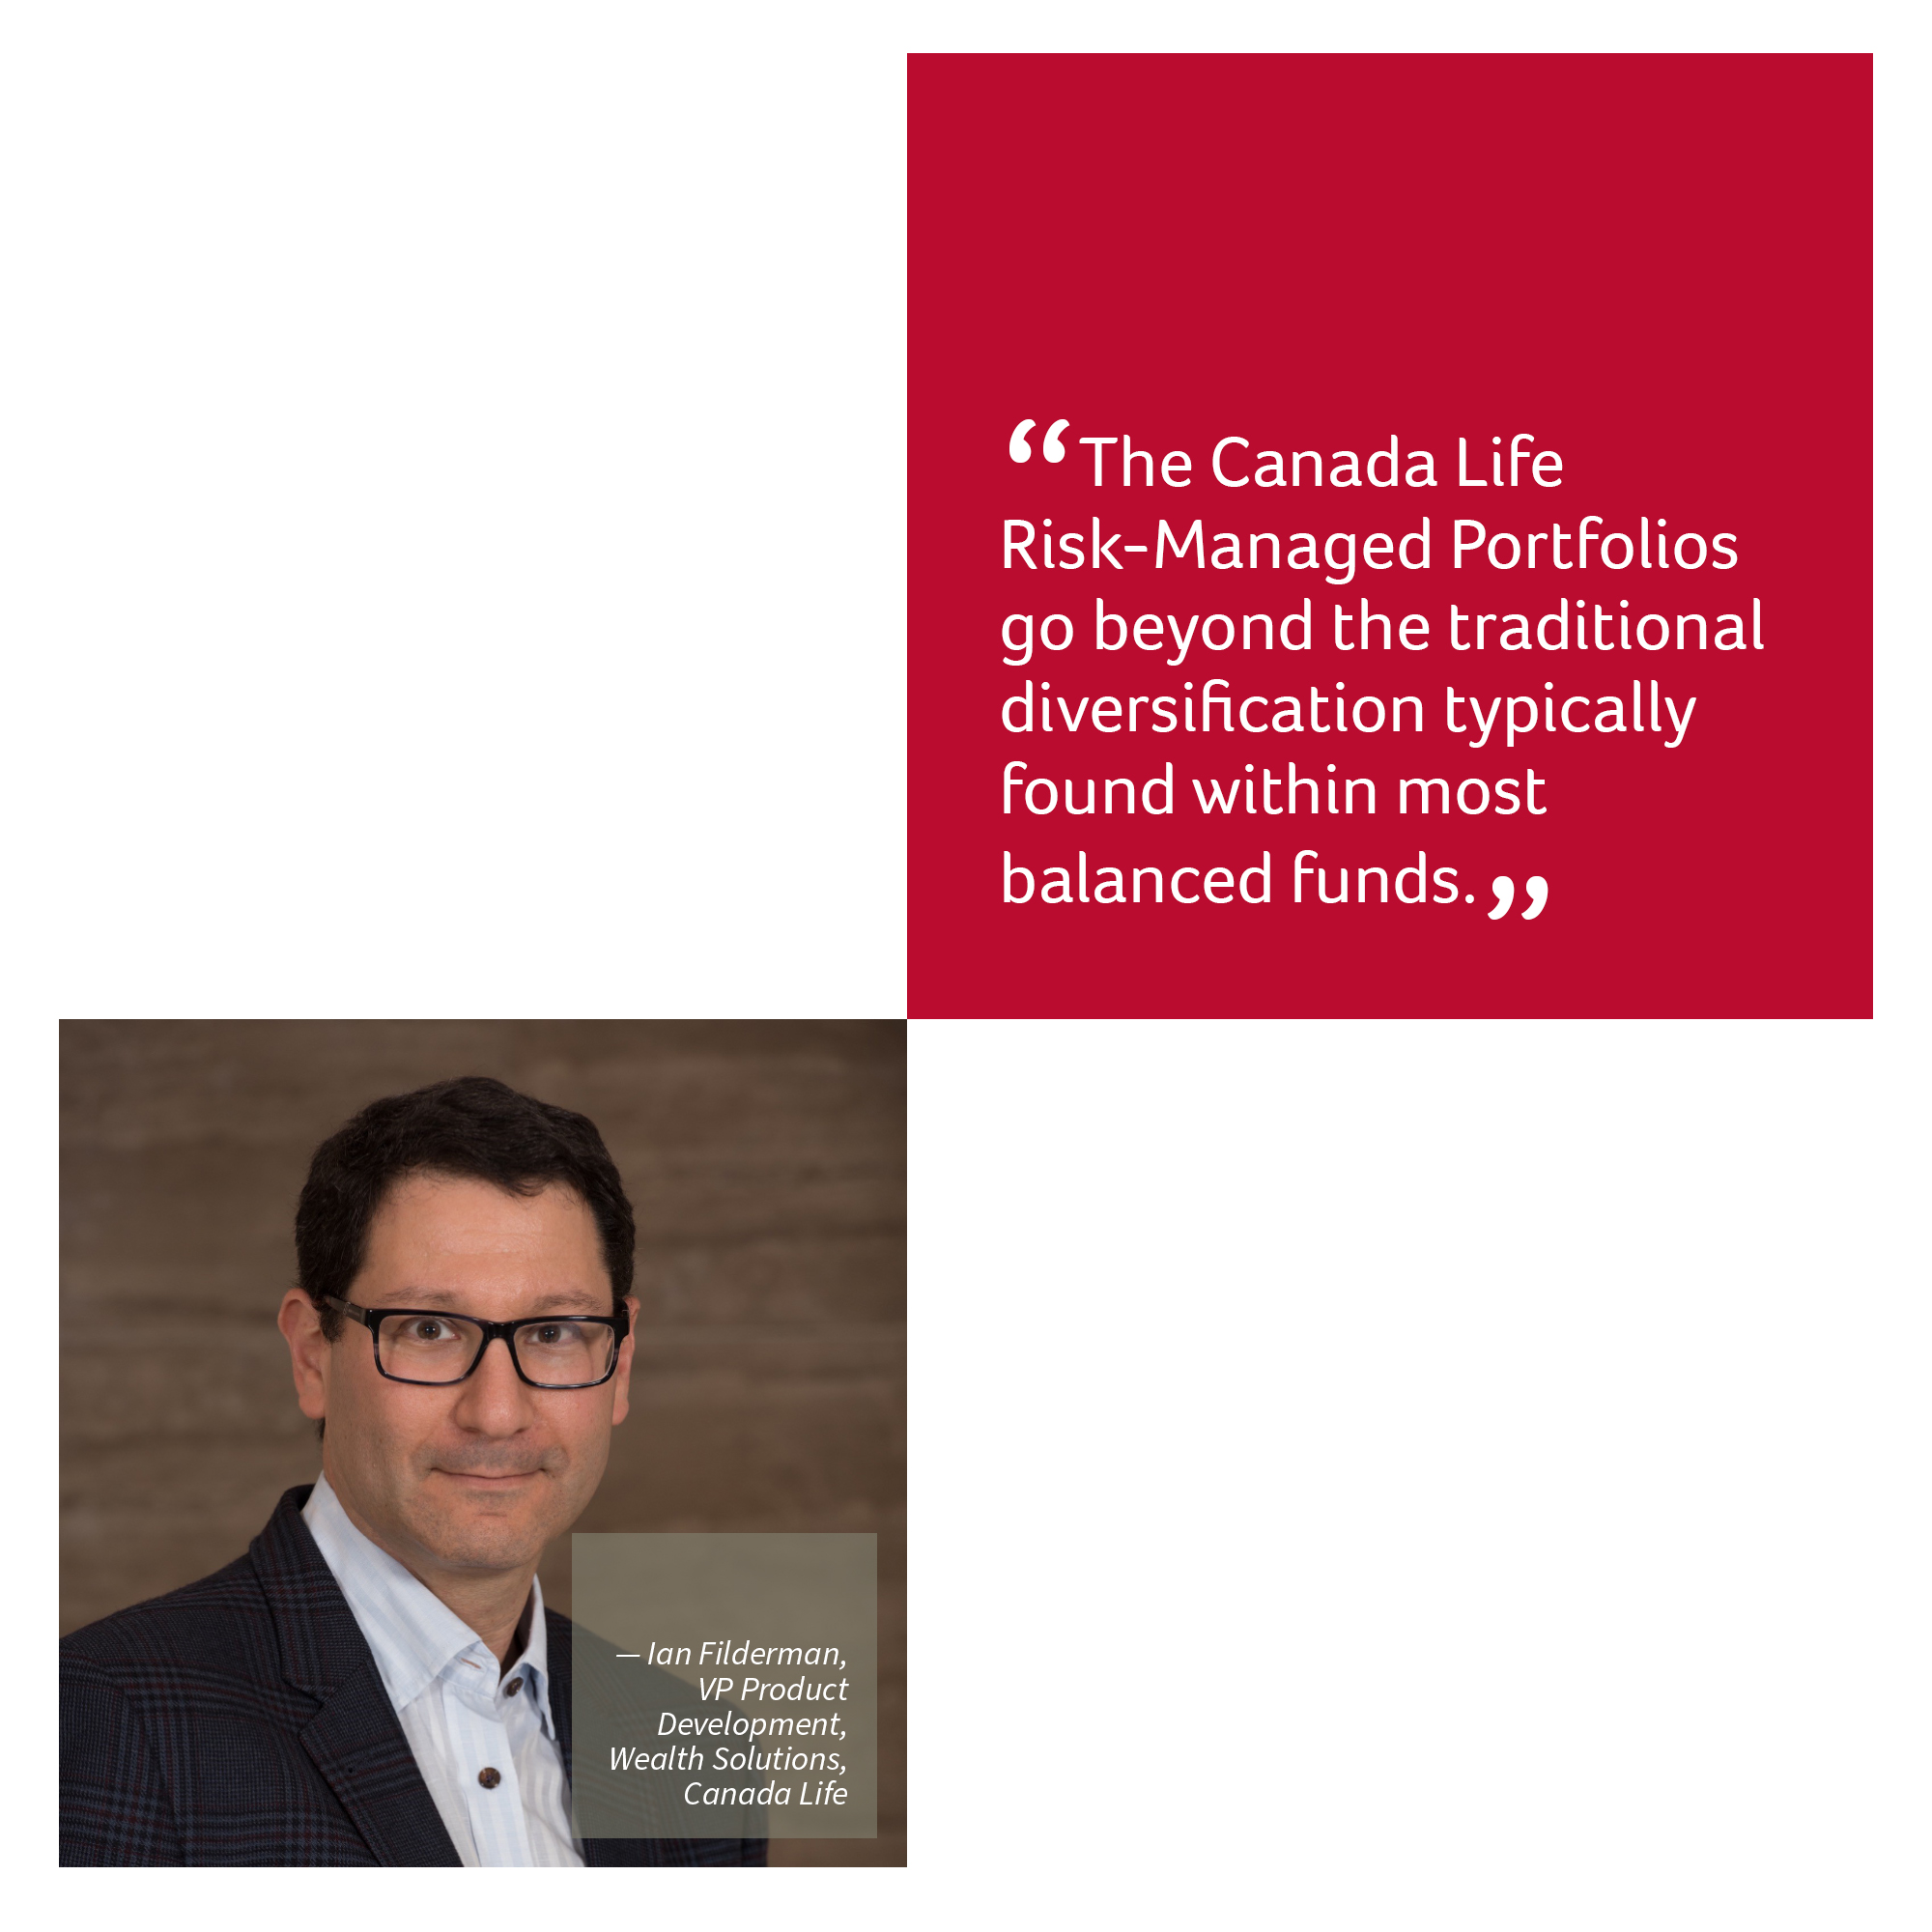 """""""The Canada Life Risk-Managed Portfolios go beyond the traditional diversification typically found within most balanced funds.""""  — Ian Filderman, VP Product Development, Wealth Solutions, Canada Life"""